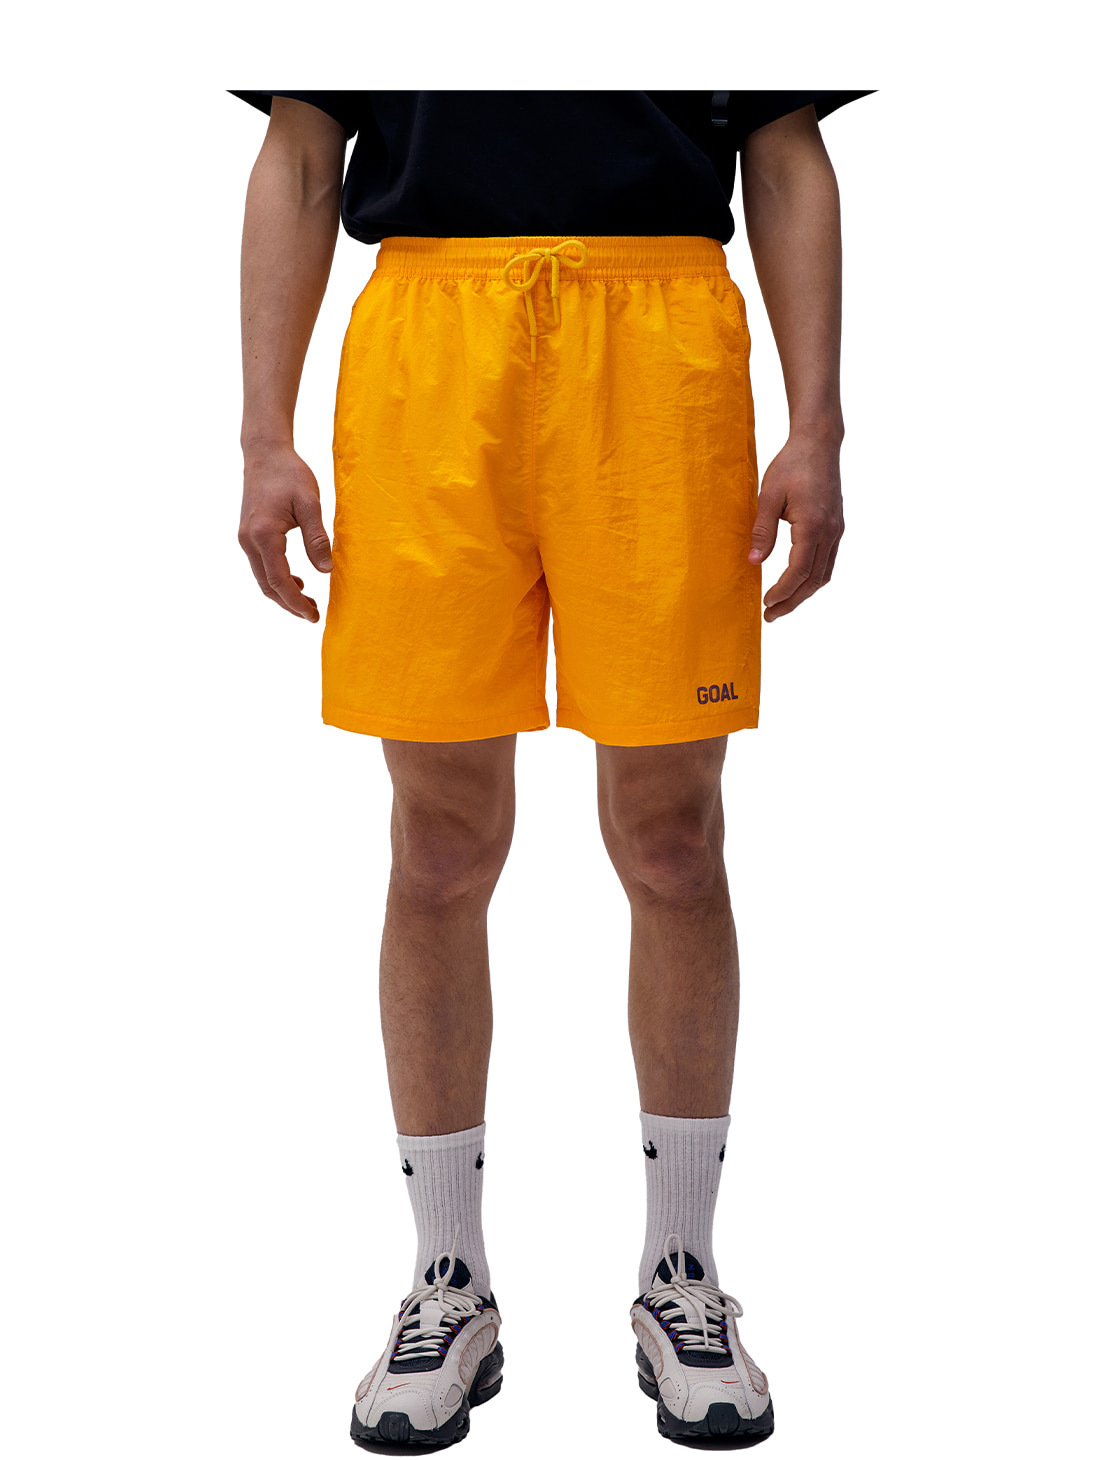 SOLID SHORTS - ORANGE